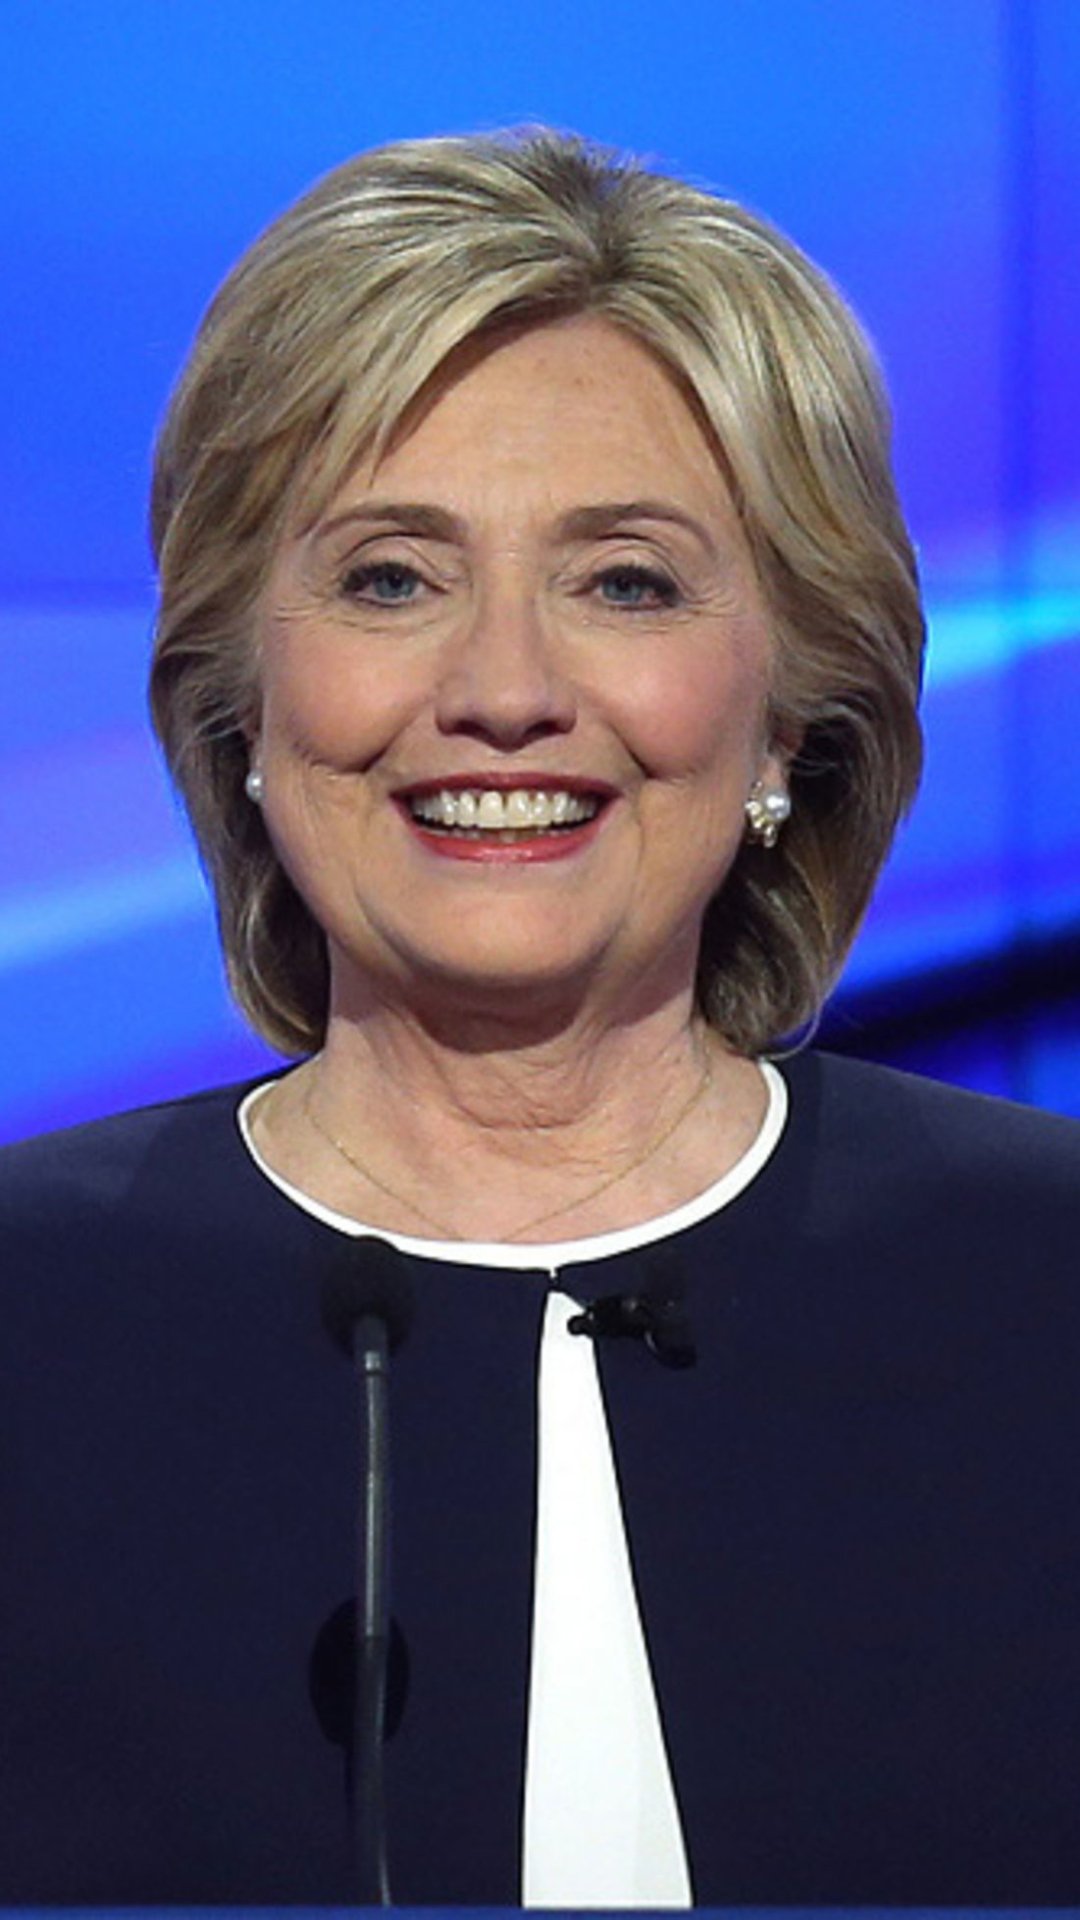 hillary clinton hd wallpapers for iphone 6 plus   wallpapers.pictures